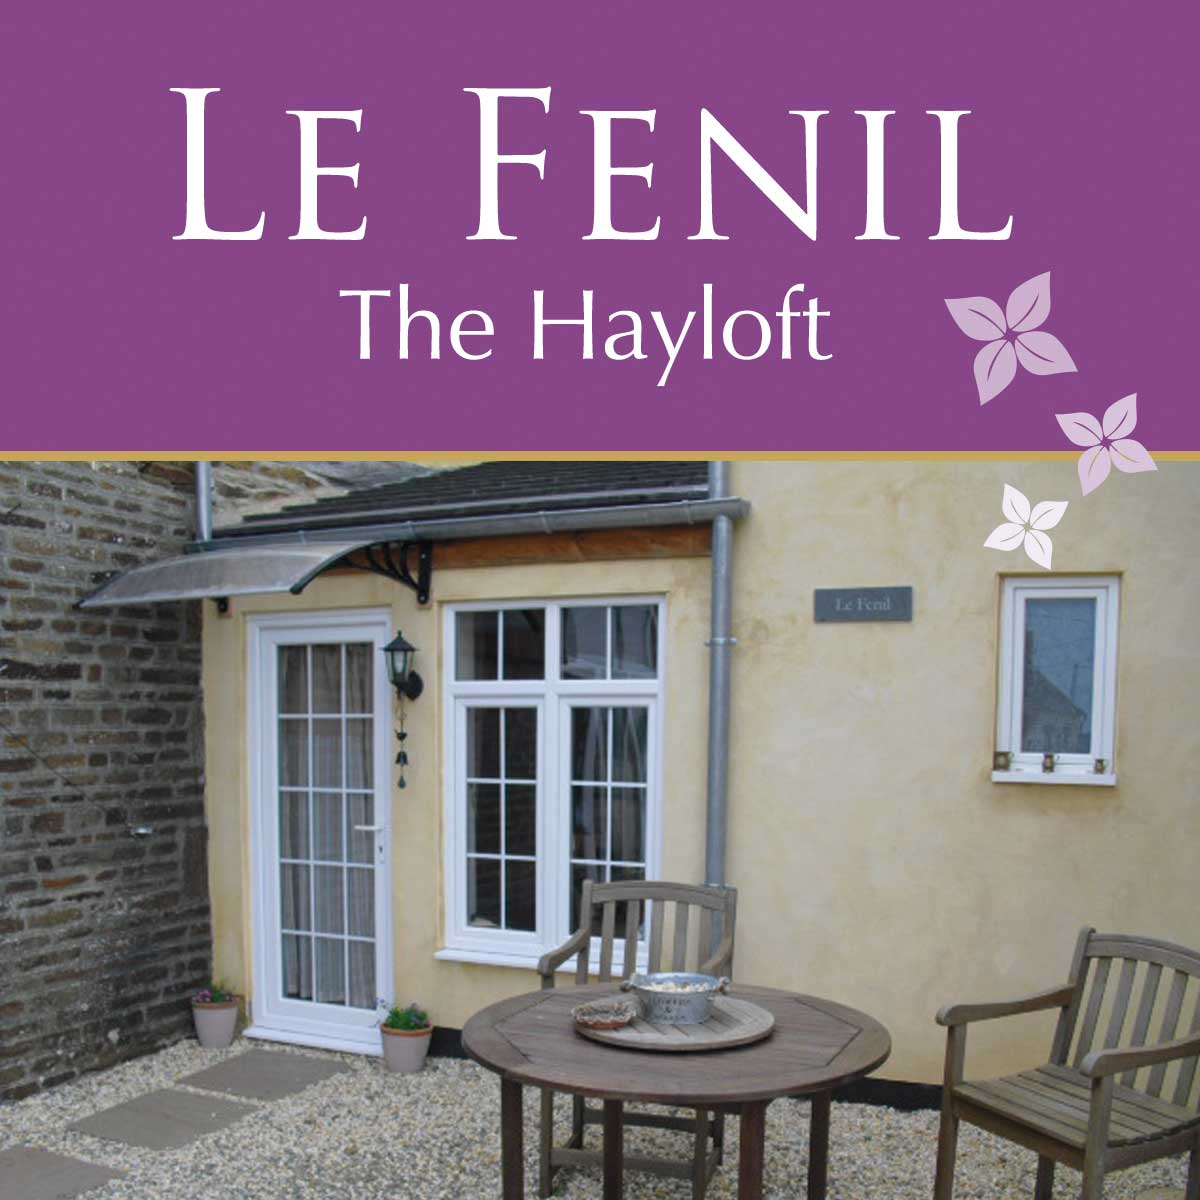 The Hayloft Holiday Gite in France